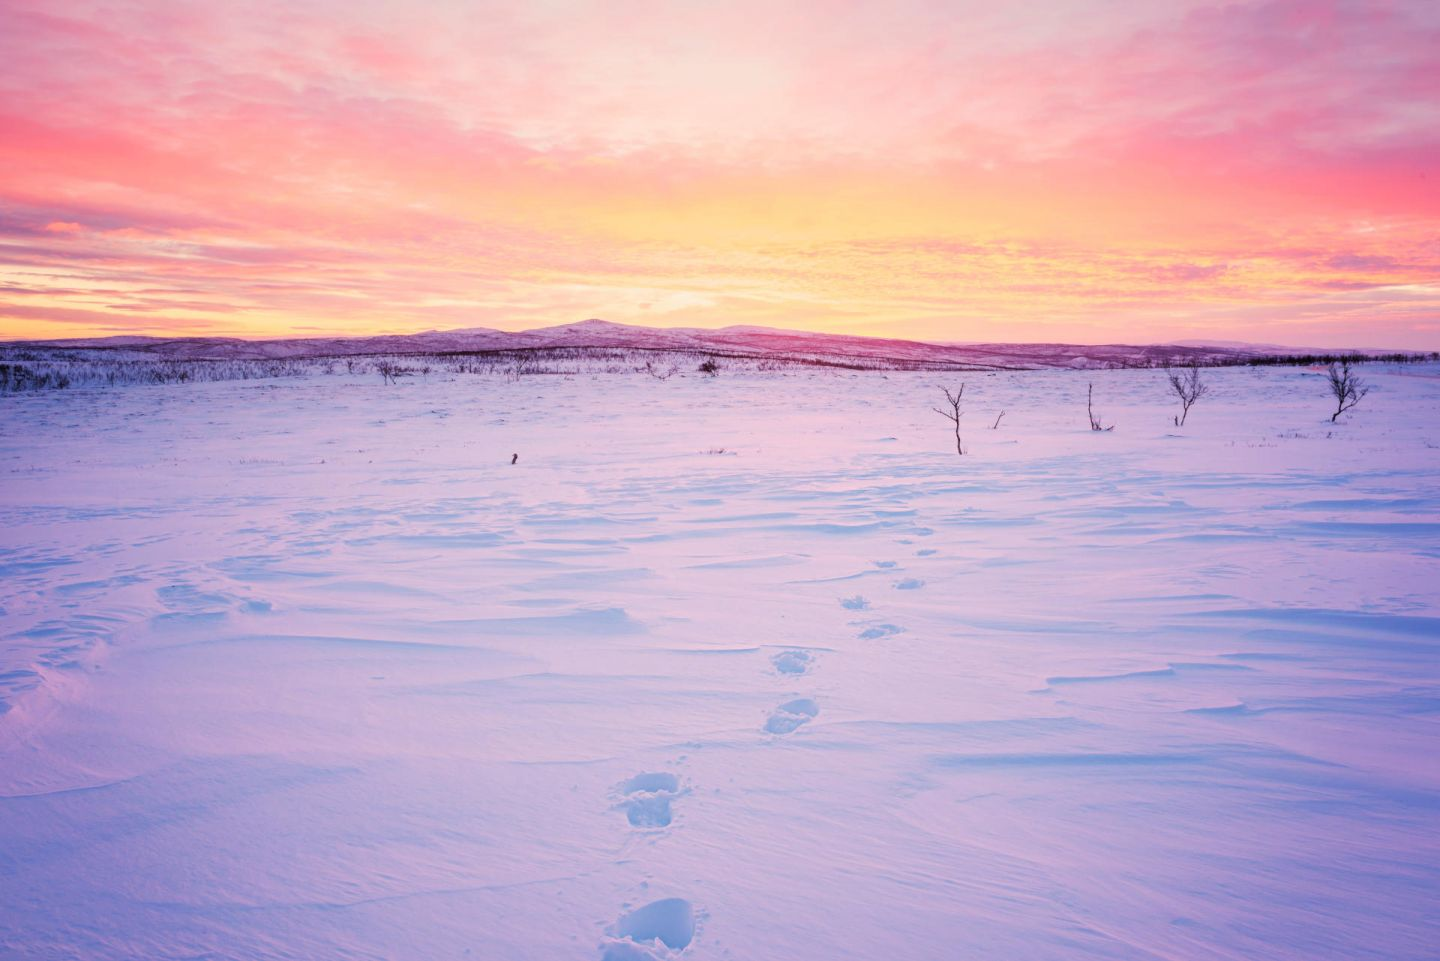 Footsteps in the snow in Nuorgam, Lapland at sunset